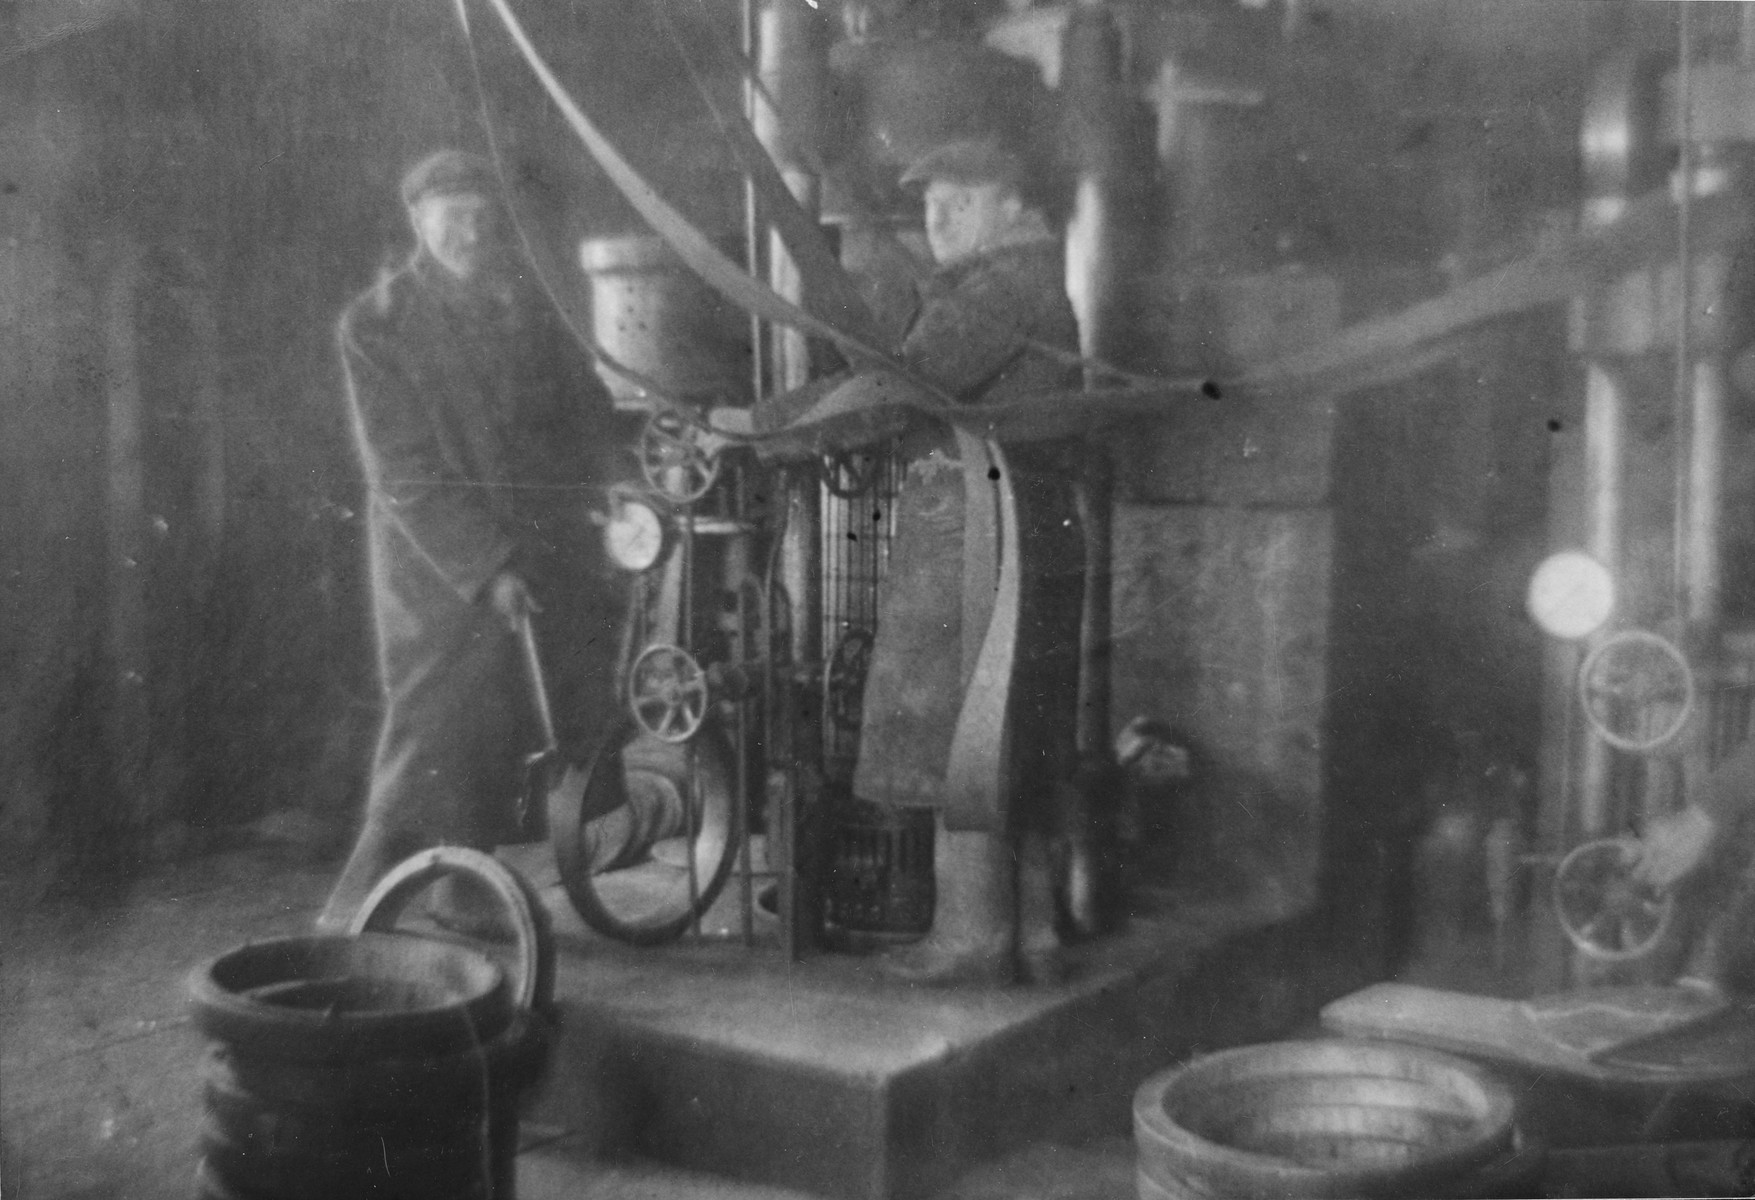 Jewish men working at an oil press in the Glubokoye ghetto.  Among those pictured is Moshe Katz.